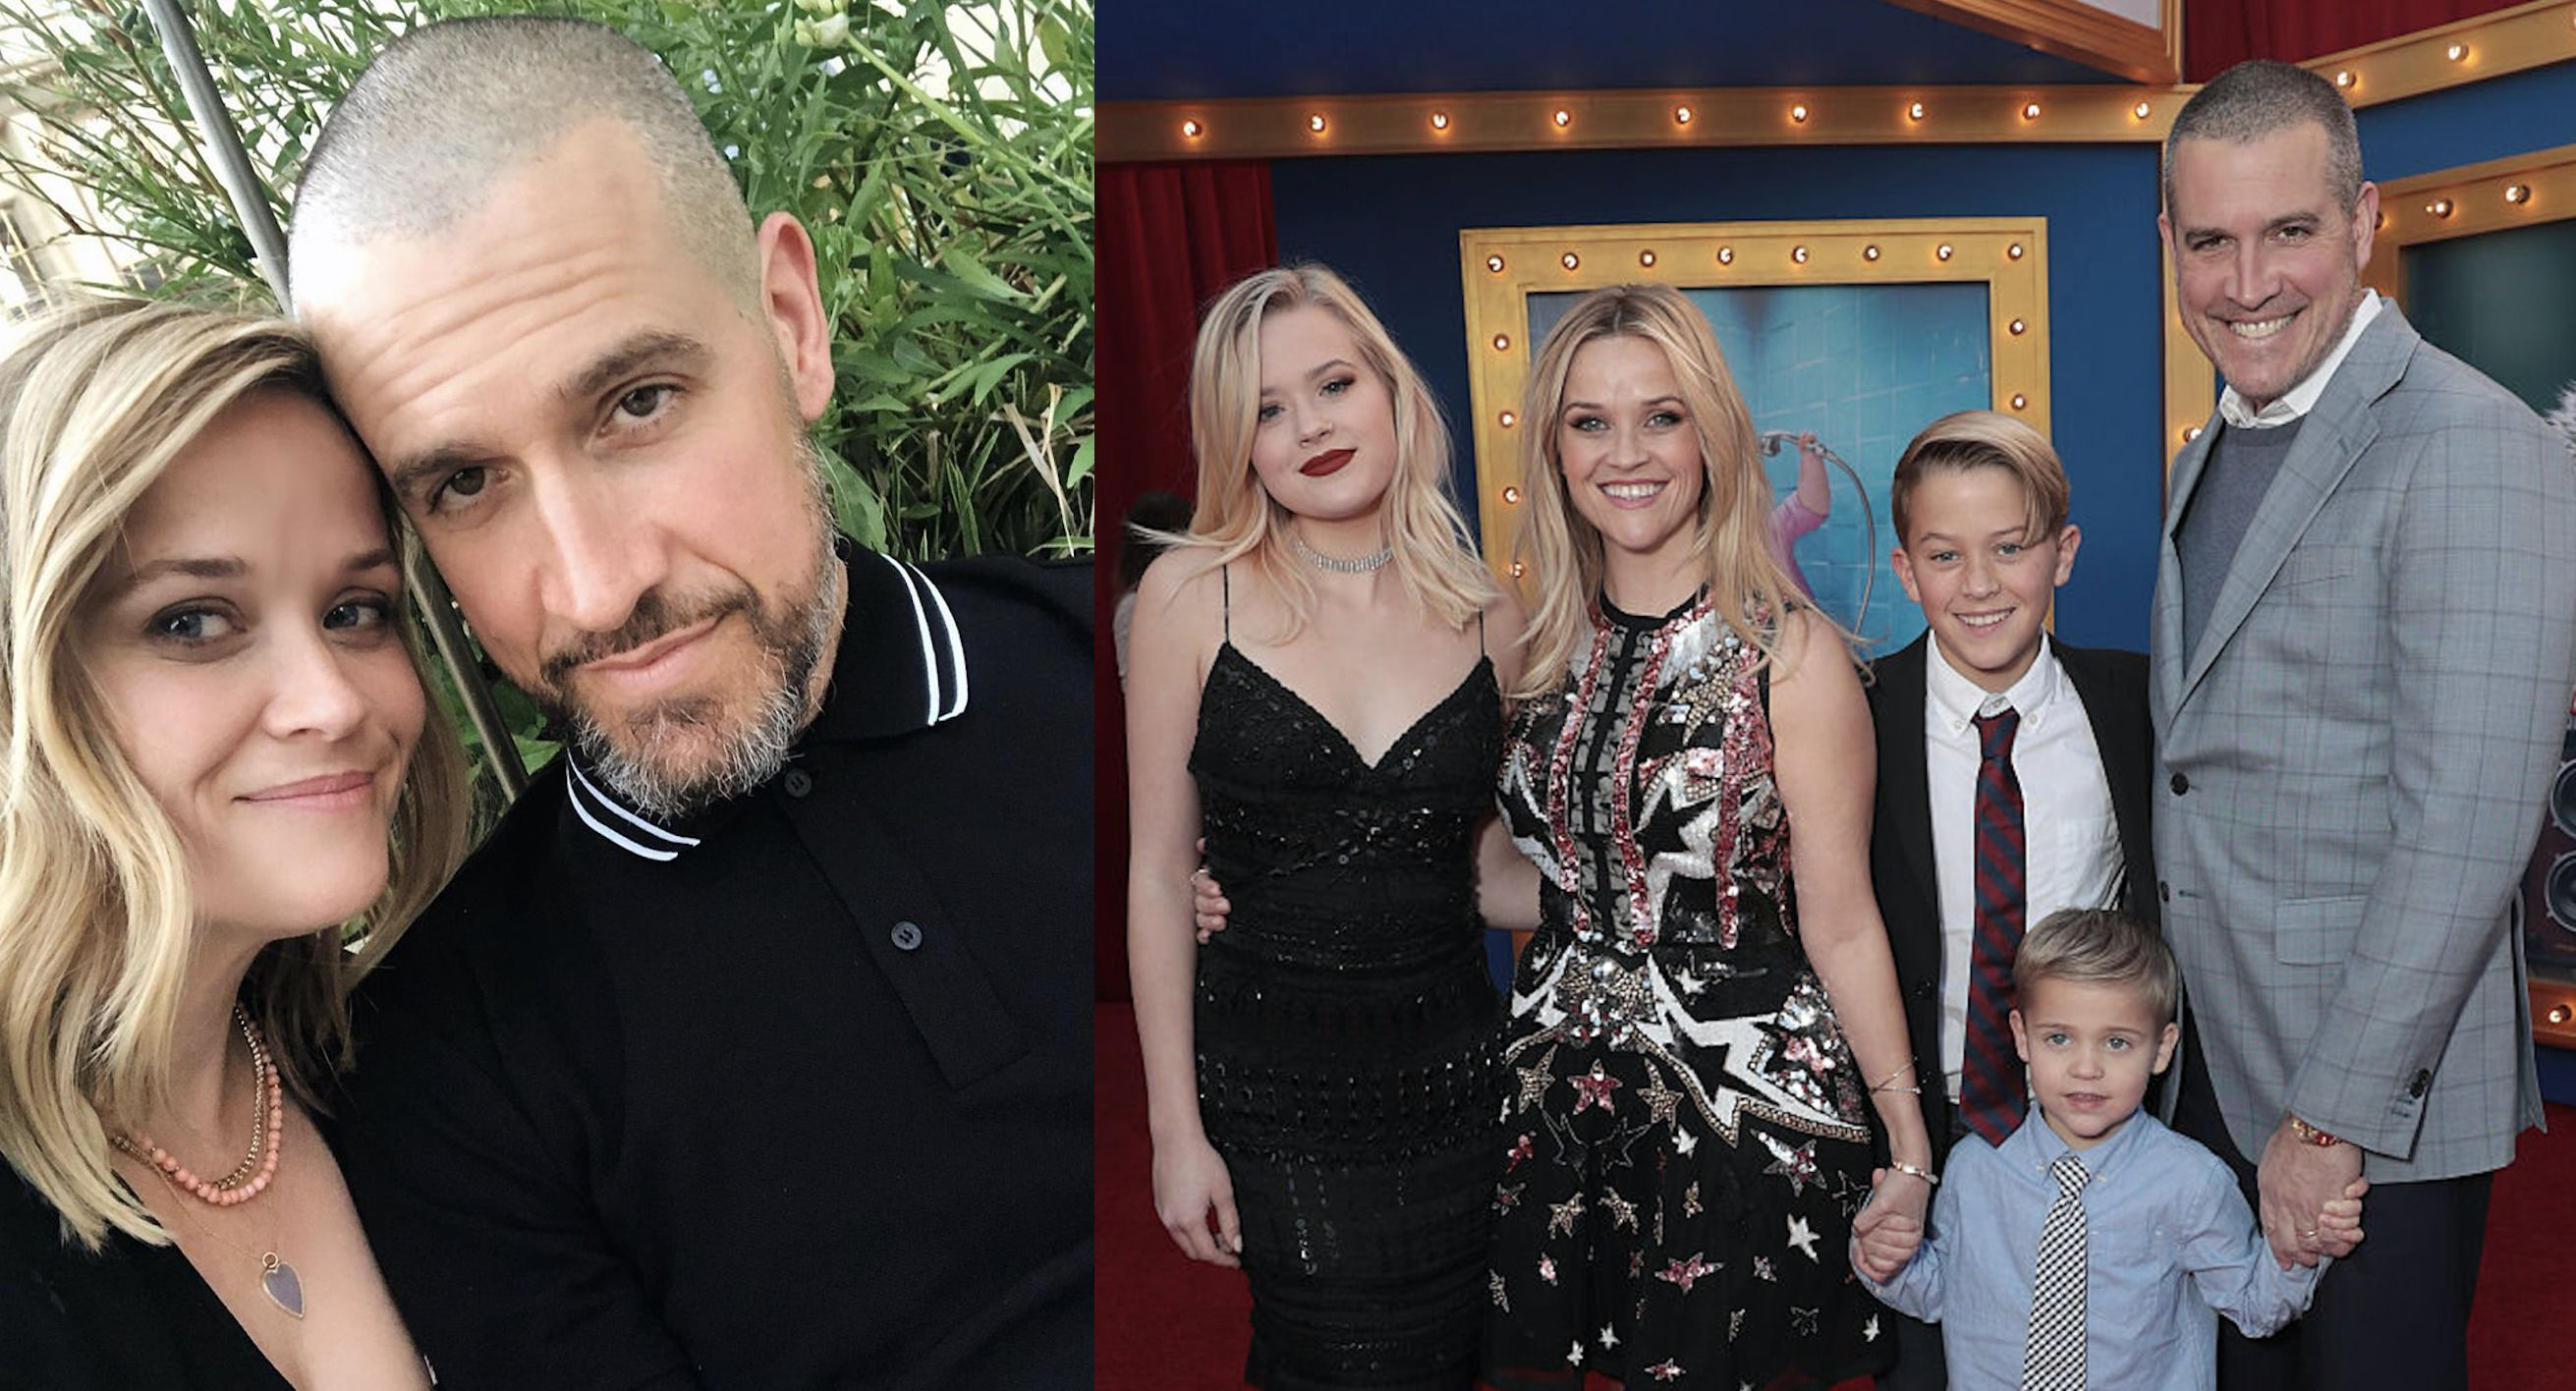 Who Is Reese Witherspoon S Husband Jim Toth More About Reese Witherspoon S Marriage And Kids Reese witherspoon married her husband jim toth in 2011. husband jim toth